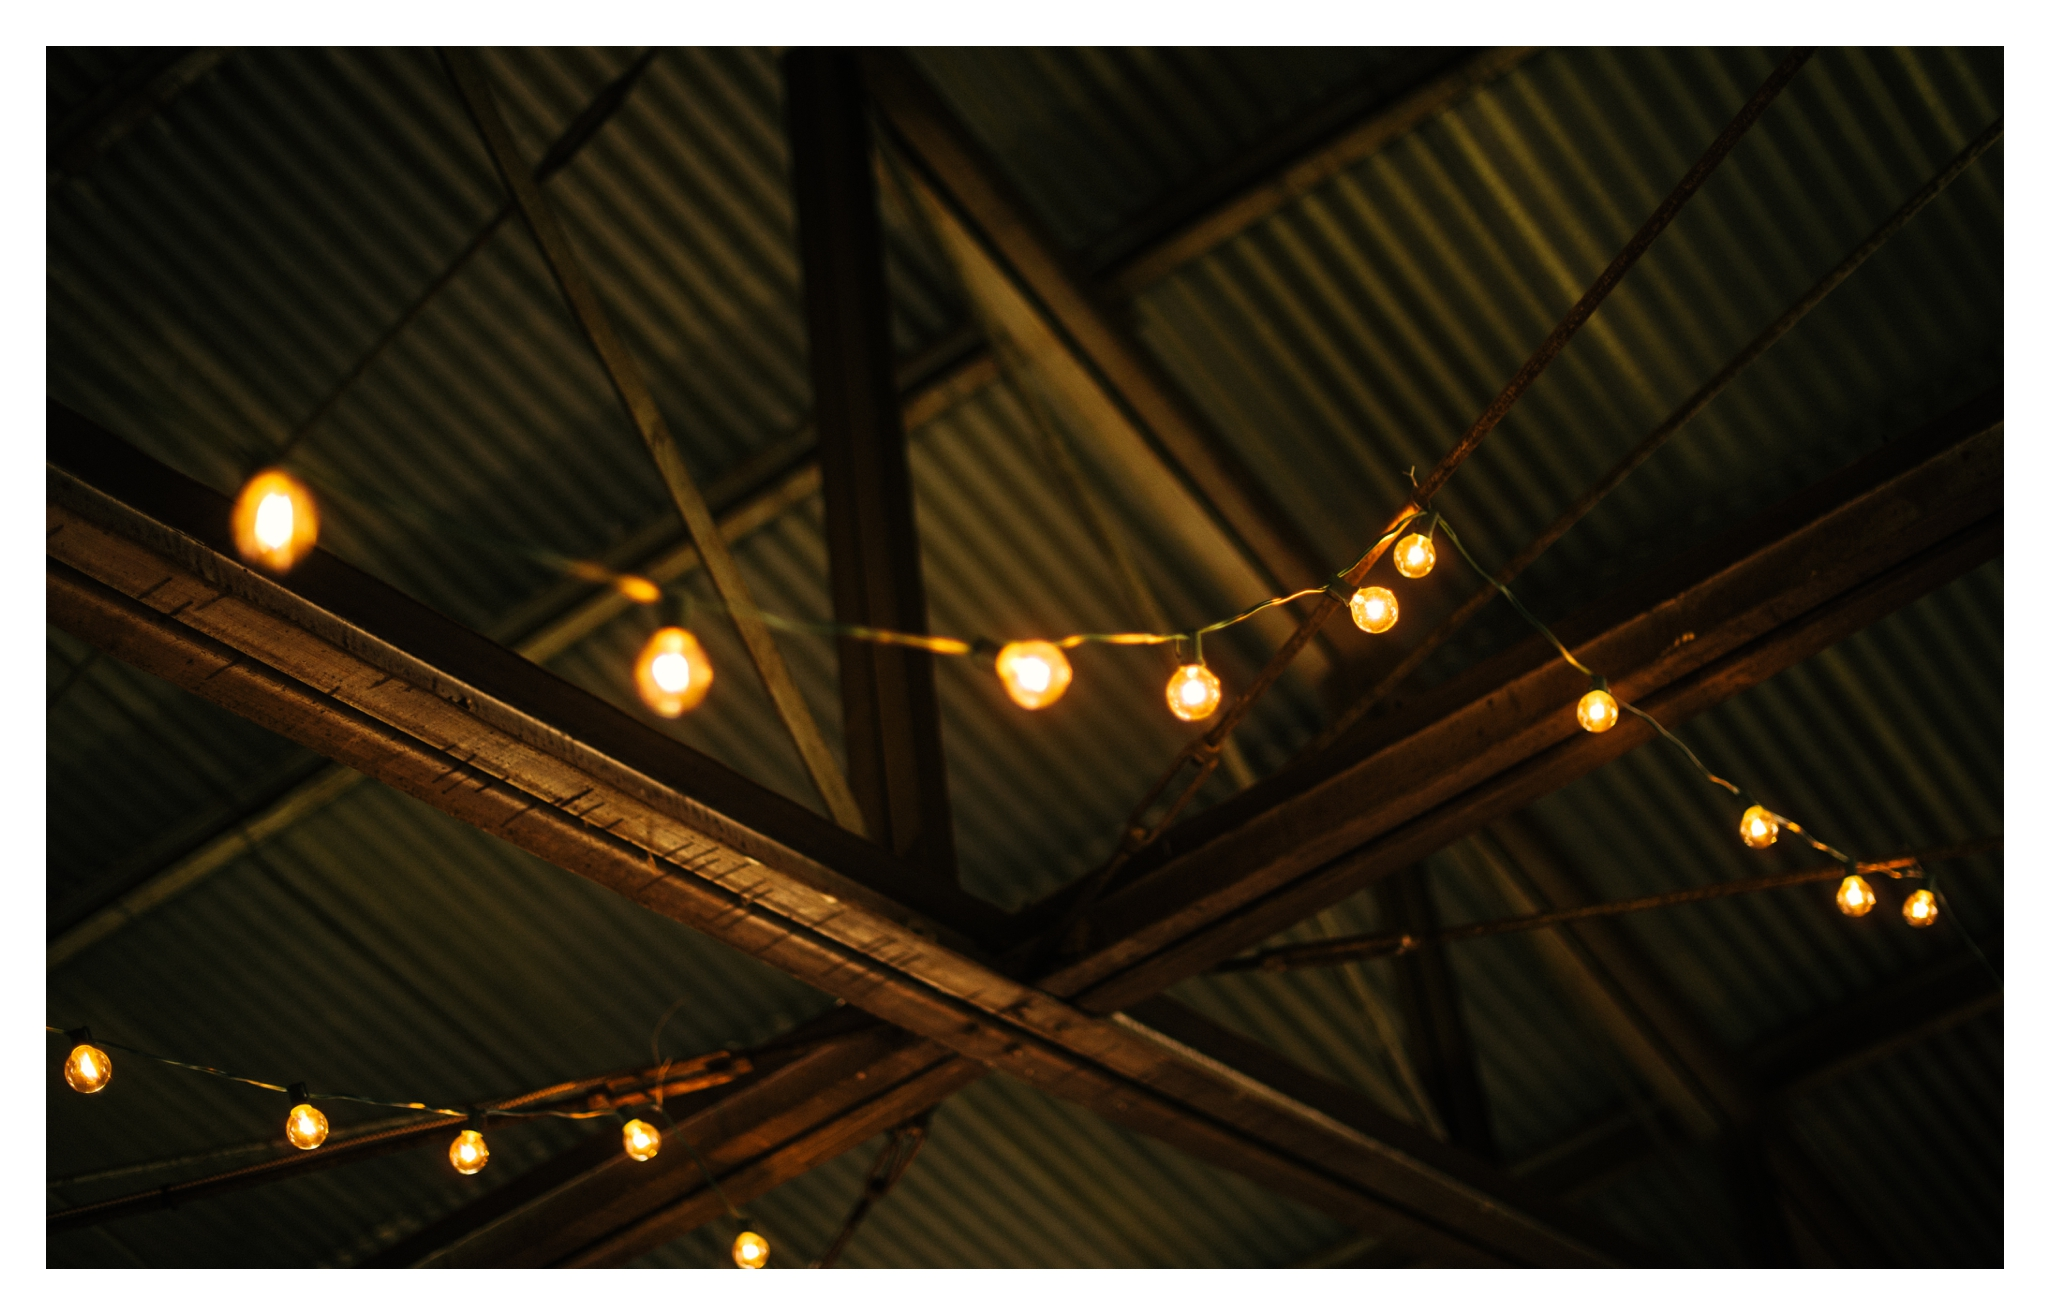 hitchedrusticweddings  Rustic relating to or typical of